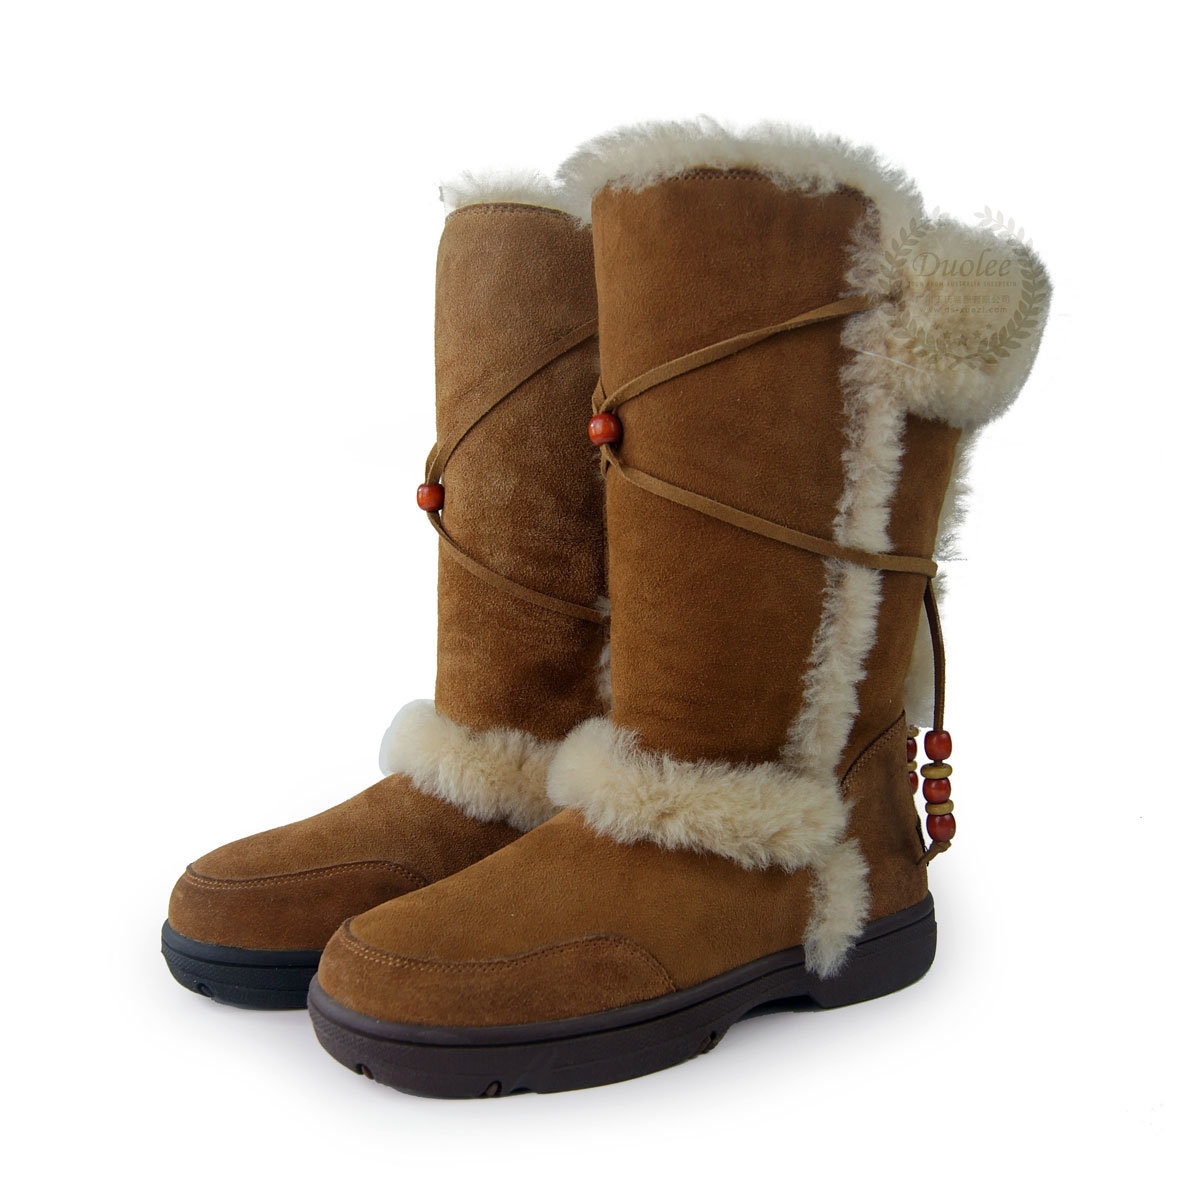 Popular Snow Boots Brands | Planetary Skin Institute